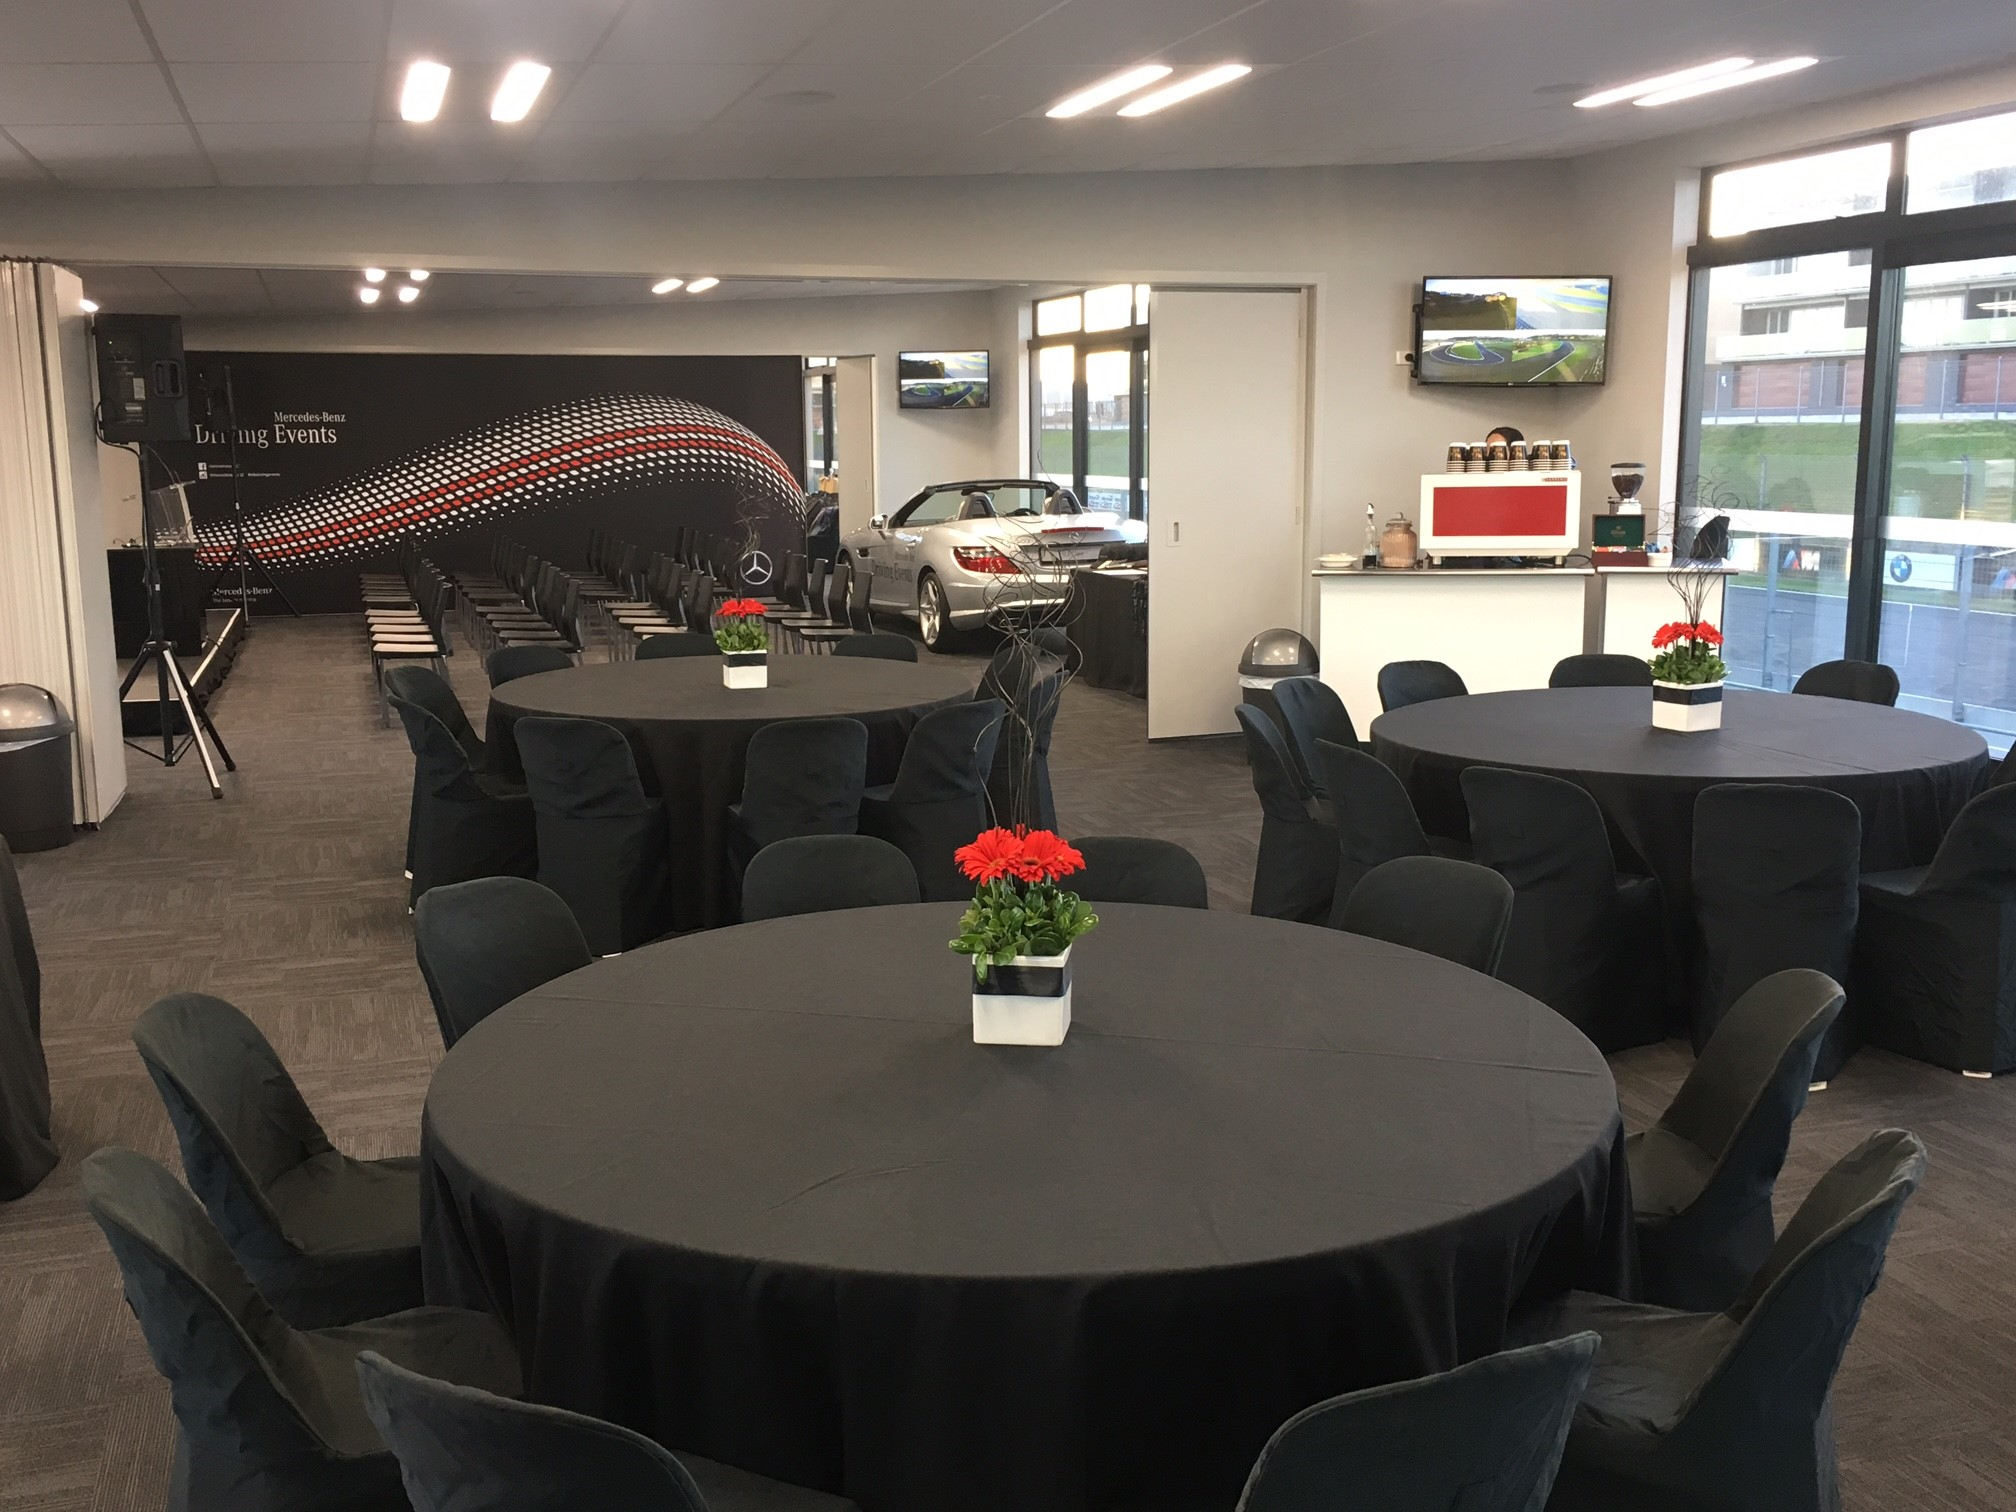 New event opportunities at Hampton Downs